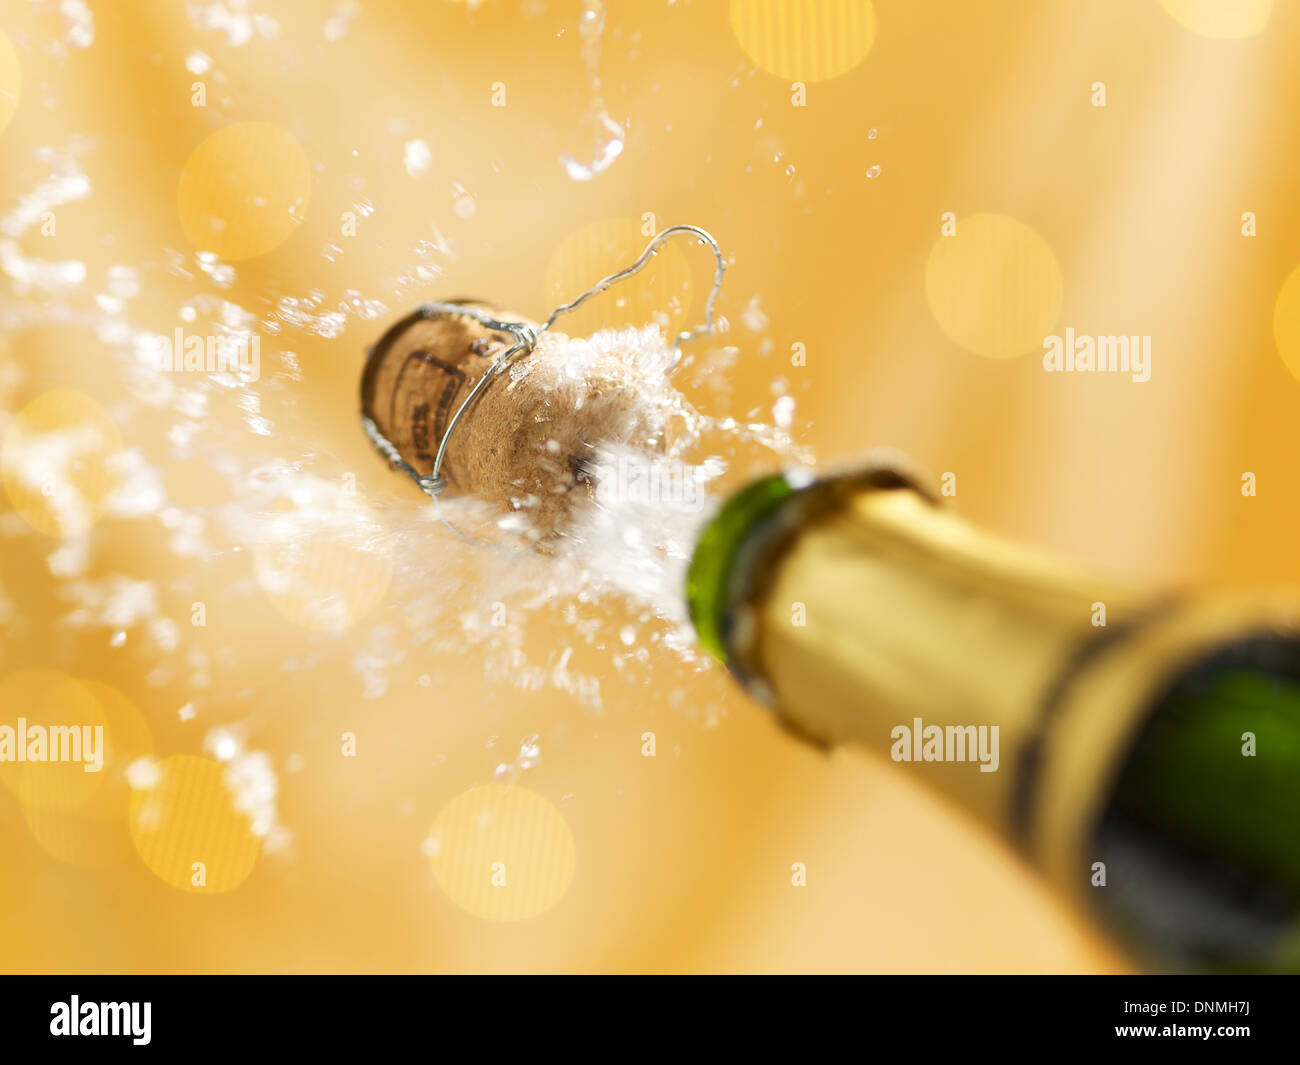 Uncorking a bottle of champagne - Stock Image